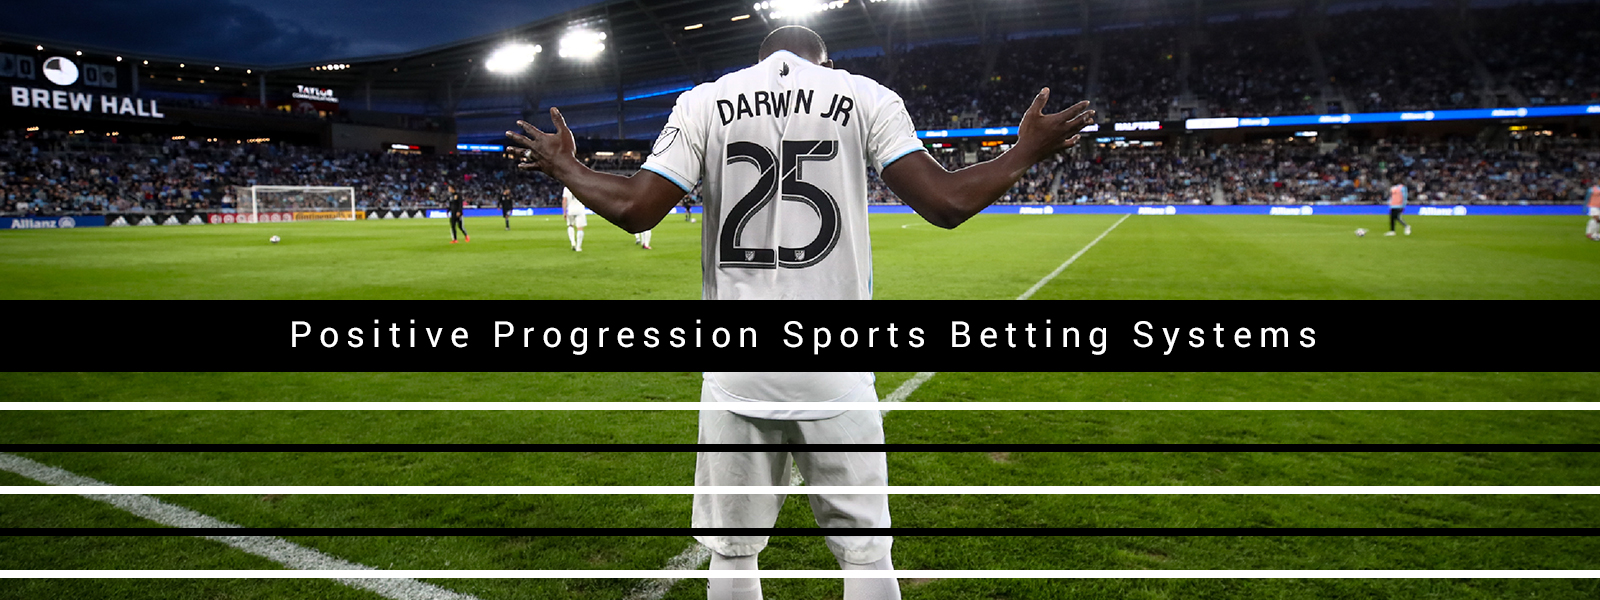 Positive Progression Sports Betting Systems